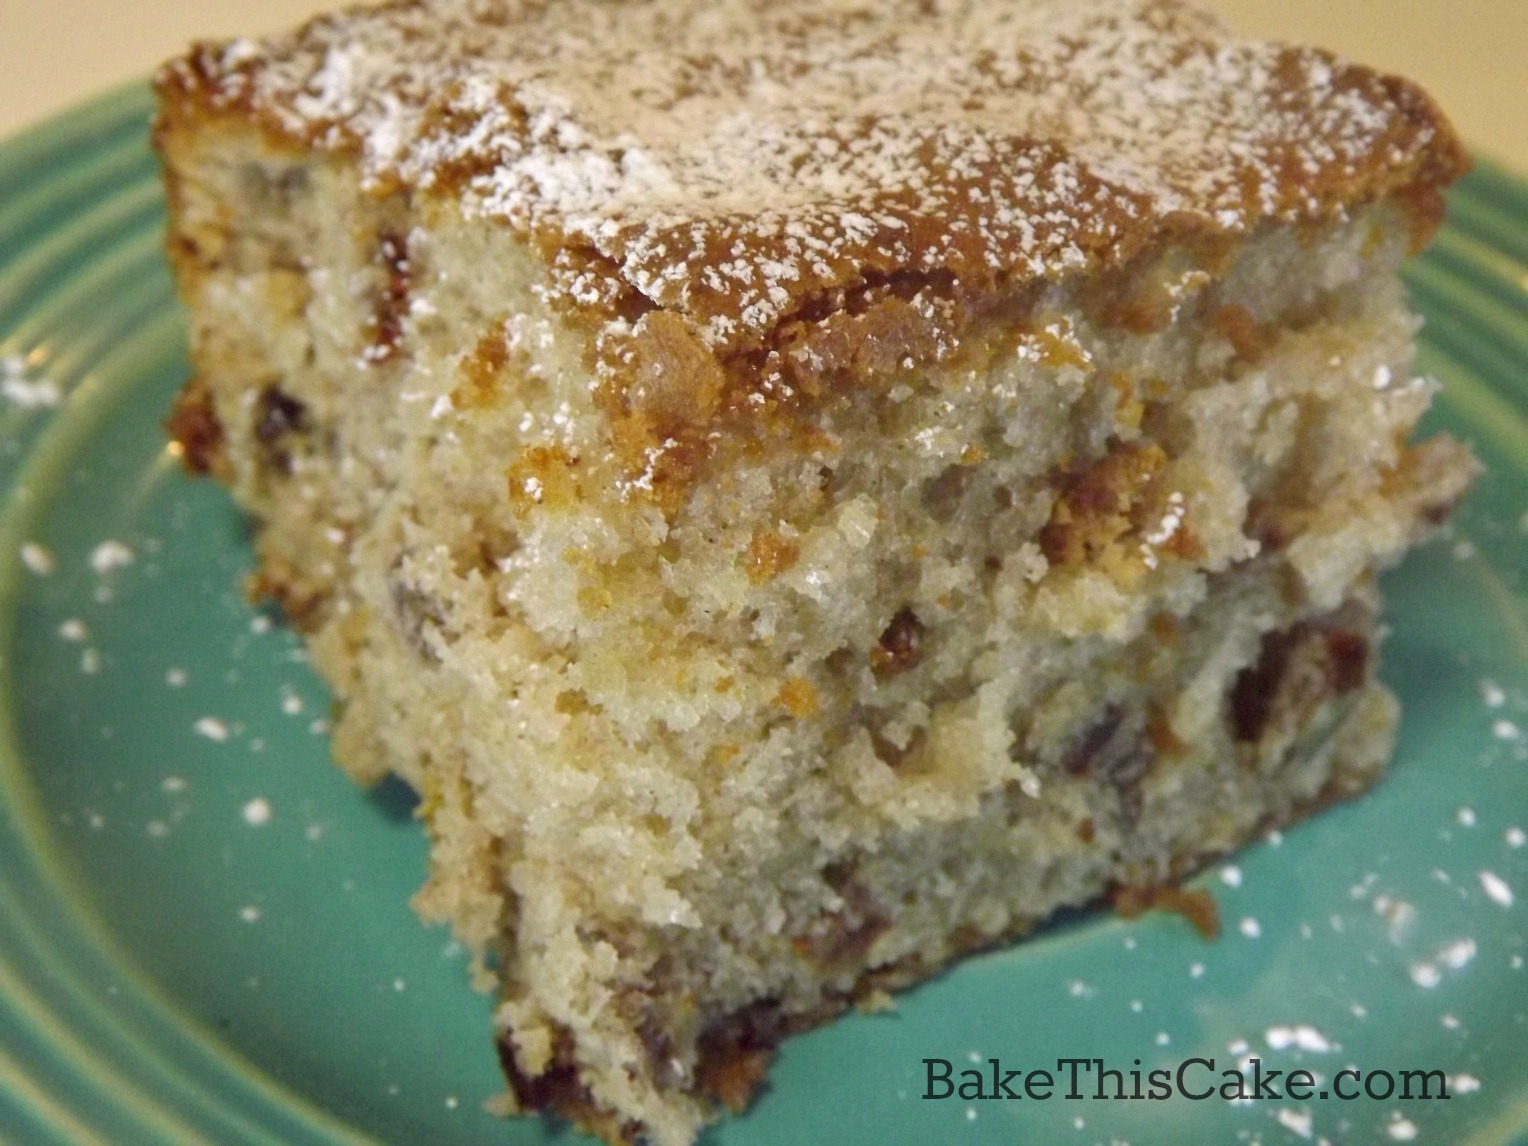 Nutty Boozy Election Cake Without Yeast is a Warm Group Hug